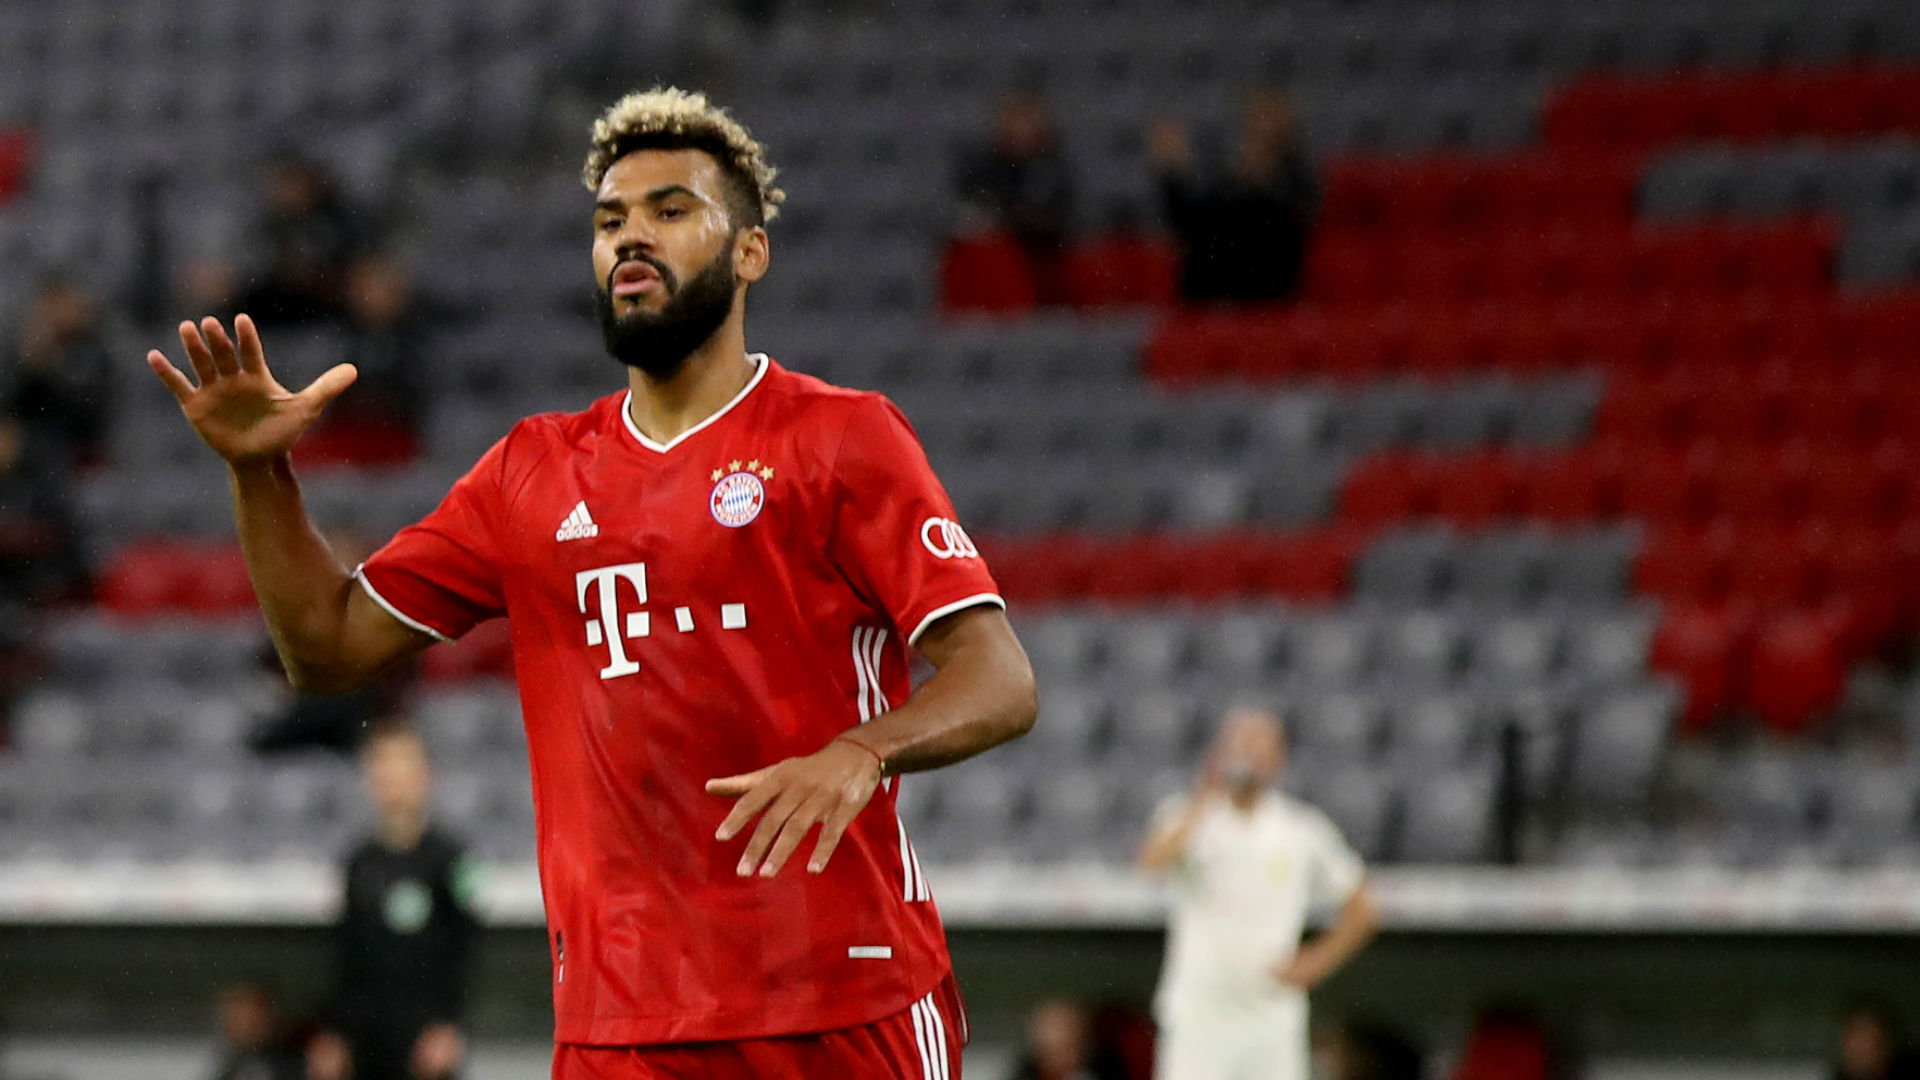 Choupo-Moting named man of the match on Bayern Munich debut against Duren